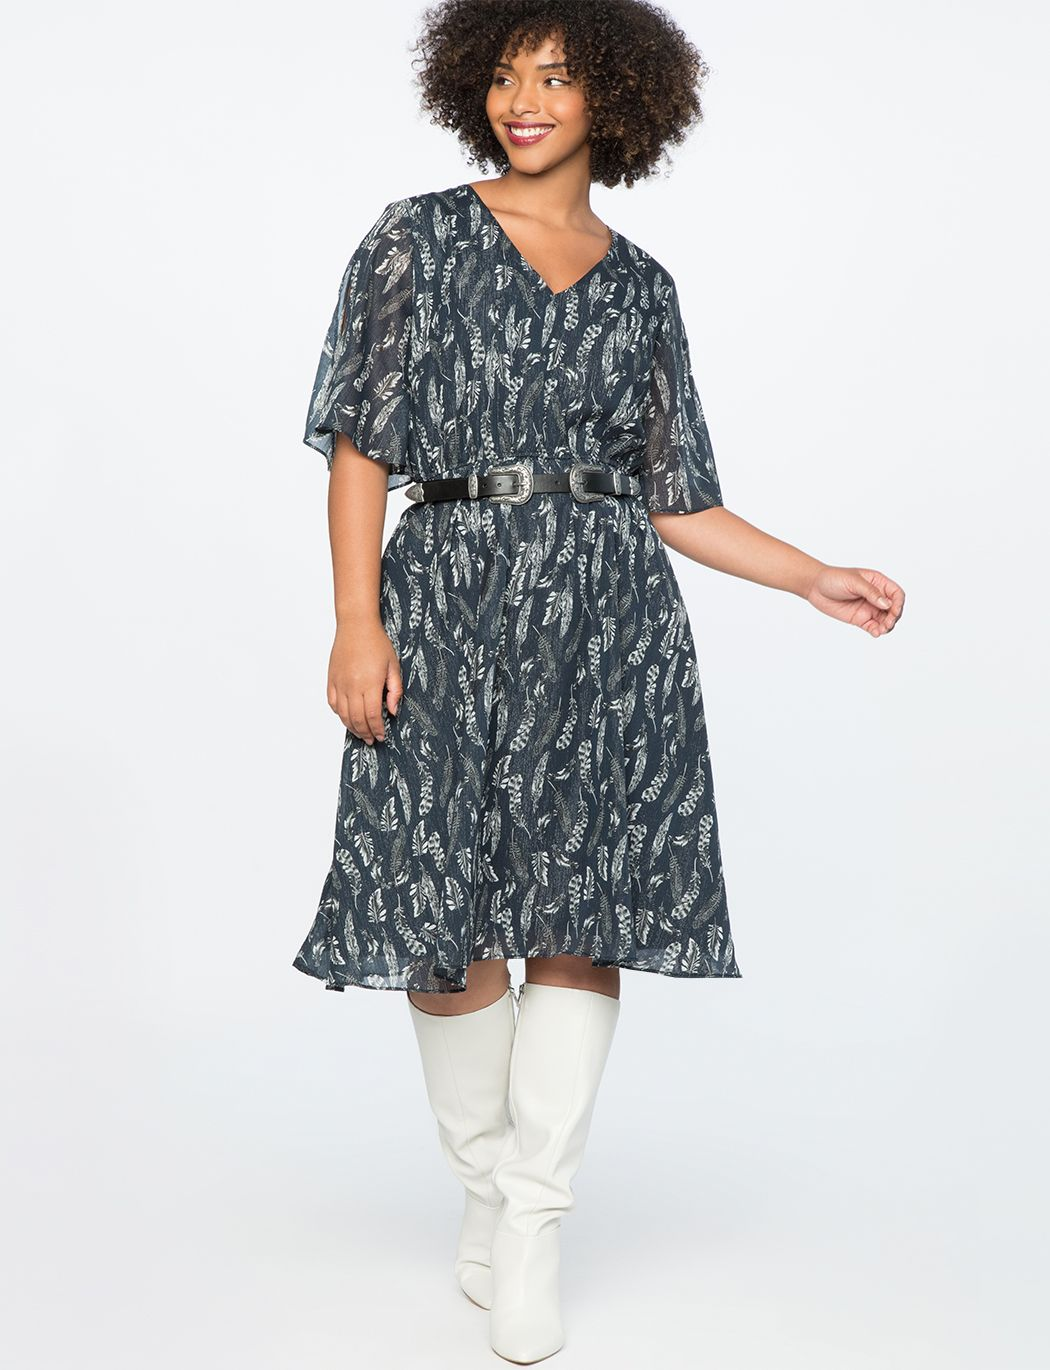 8bcb1a717f1 Slit Sleeve Fit and Flare Dress Stir Fly